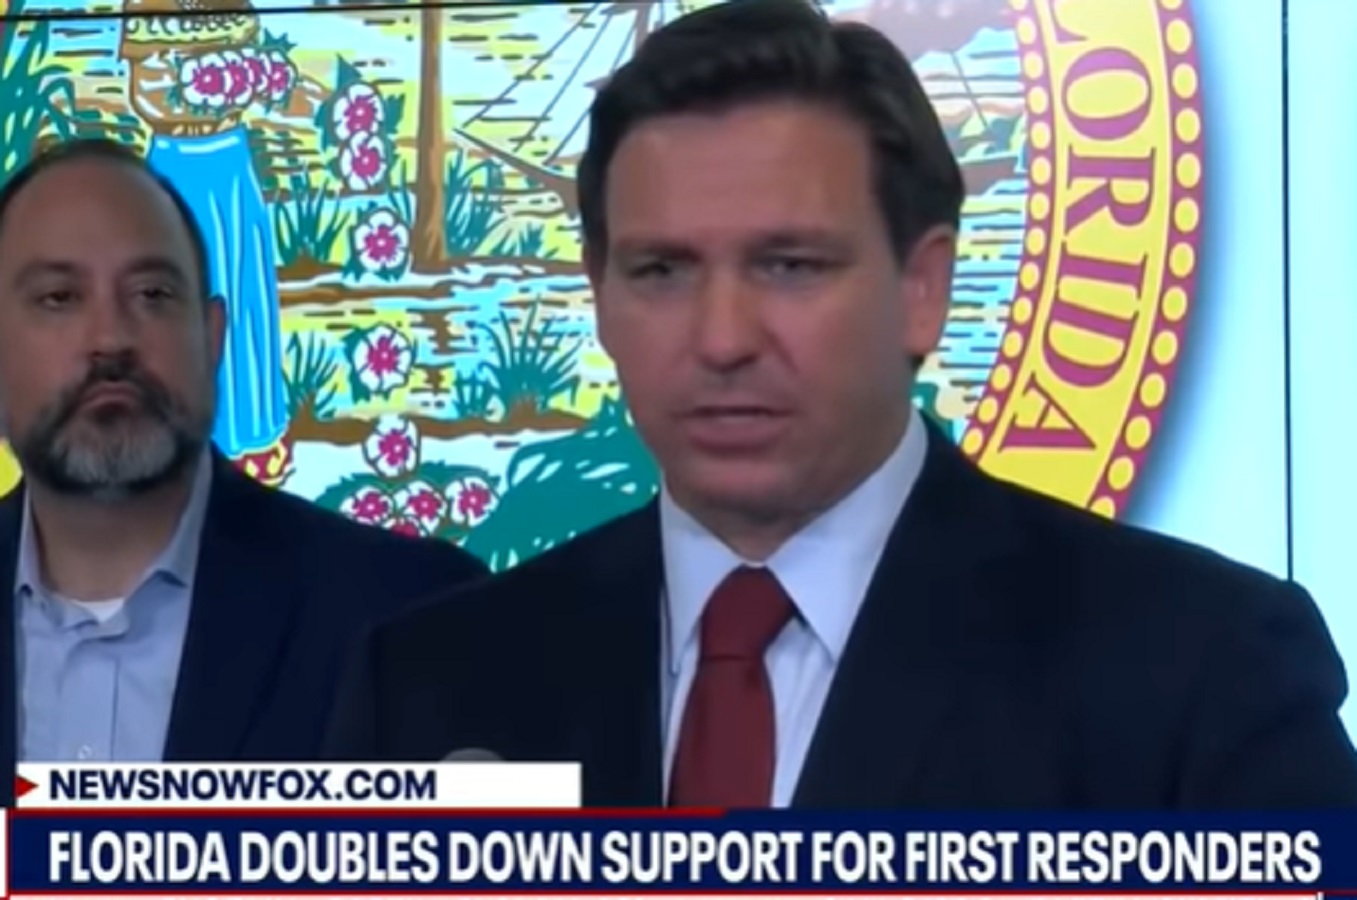 WATCH: DeSantis Tells Antifa and Black Lives Matter to Stay Out of Florida or There Will Be Consequences